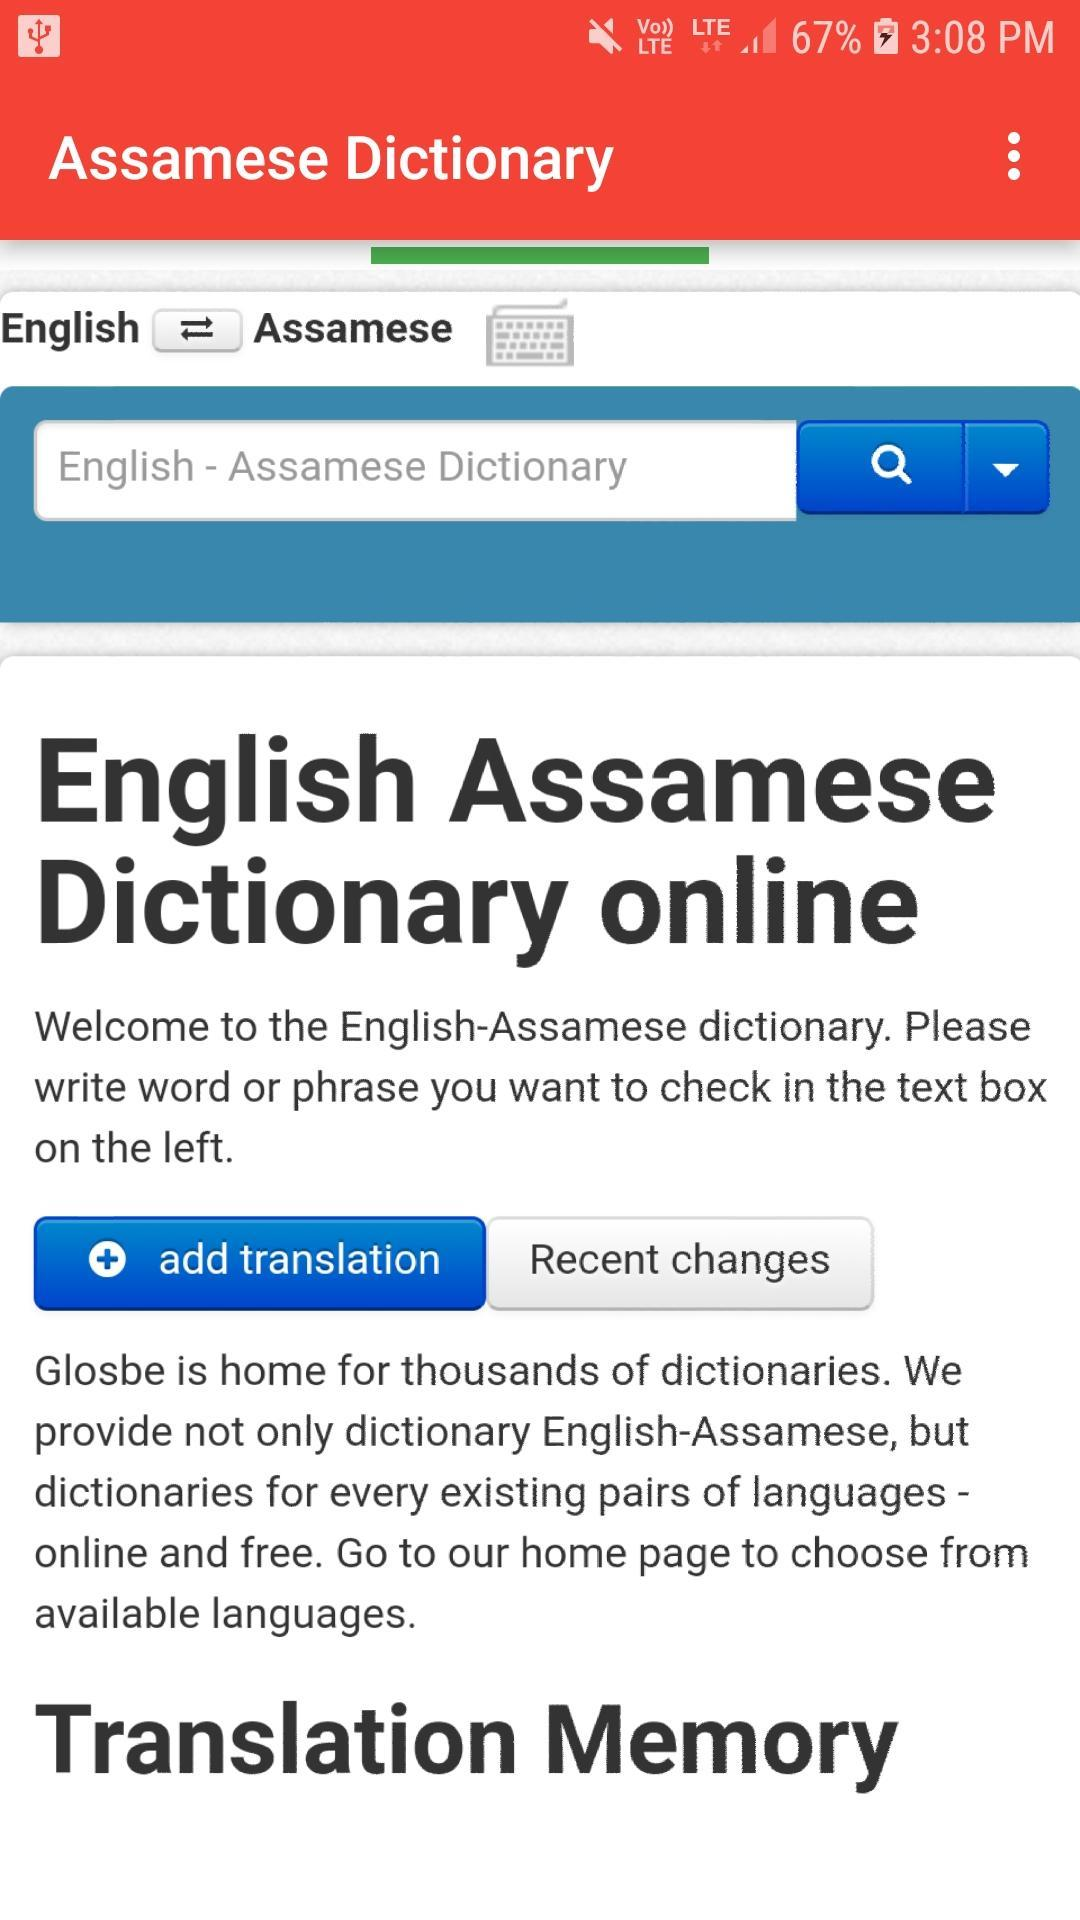 New English-Assamese Dictionary 2019 for Android - APK Download